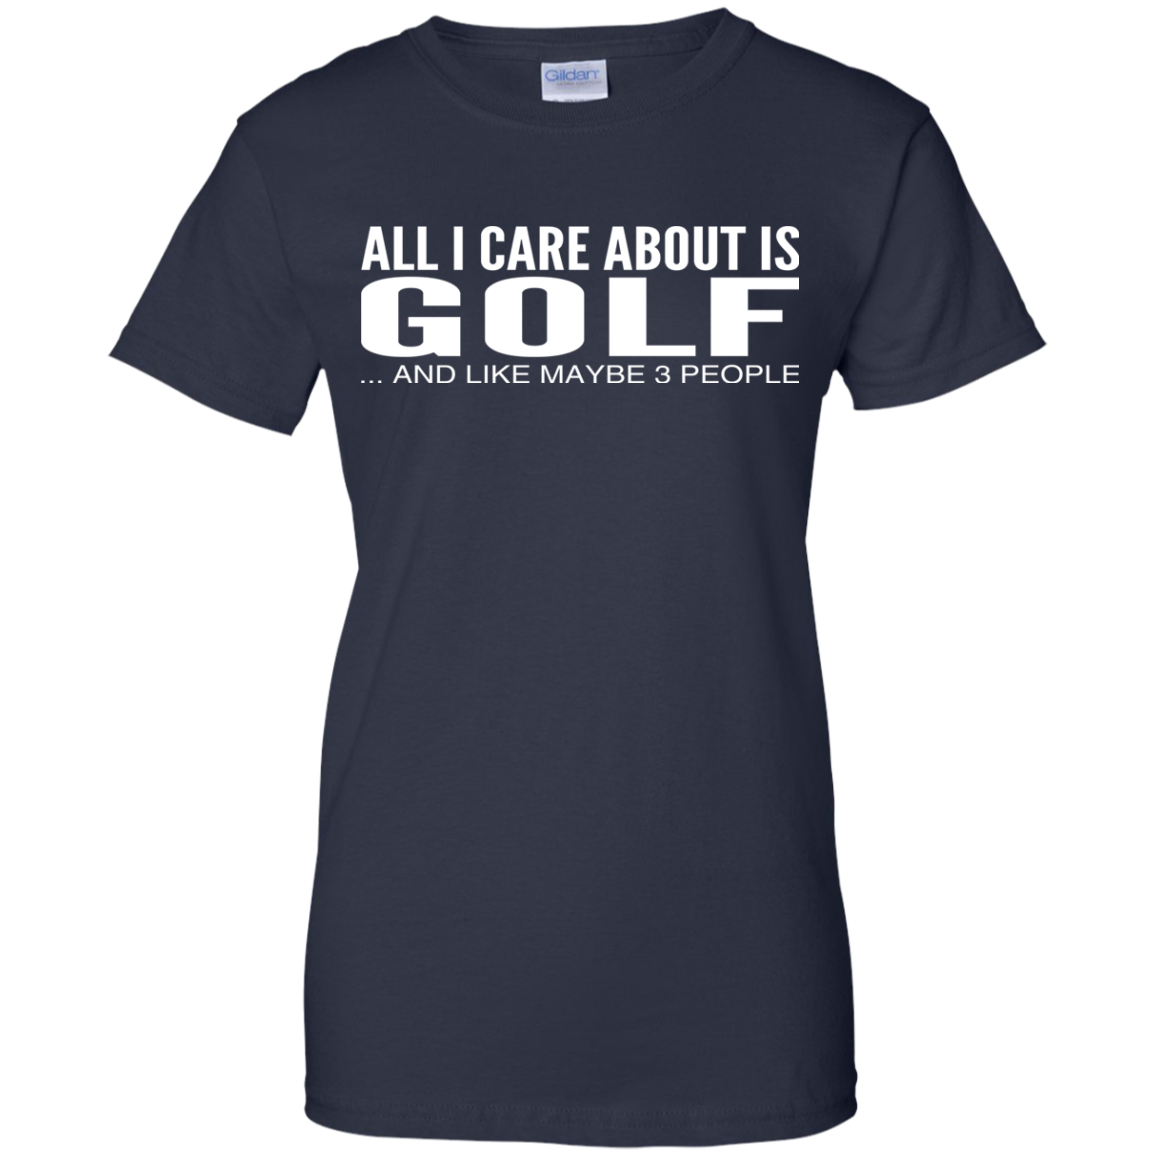 All I Care About Is Golf And Like Maybe 3 People Ladies Tees